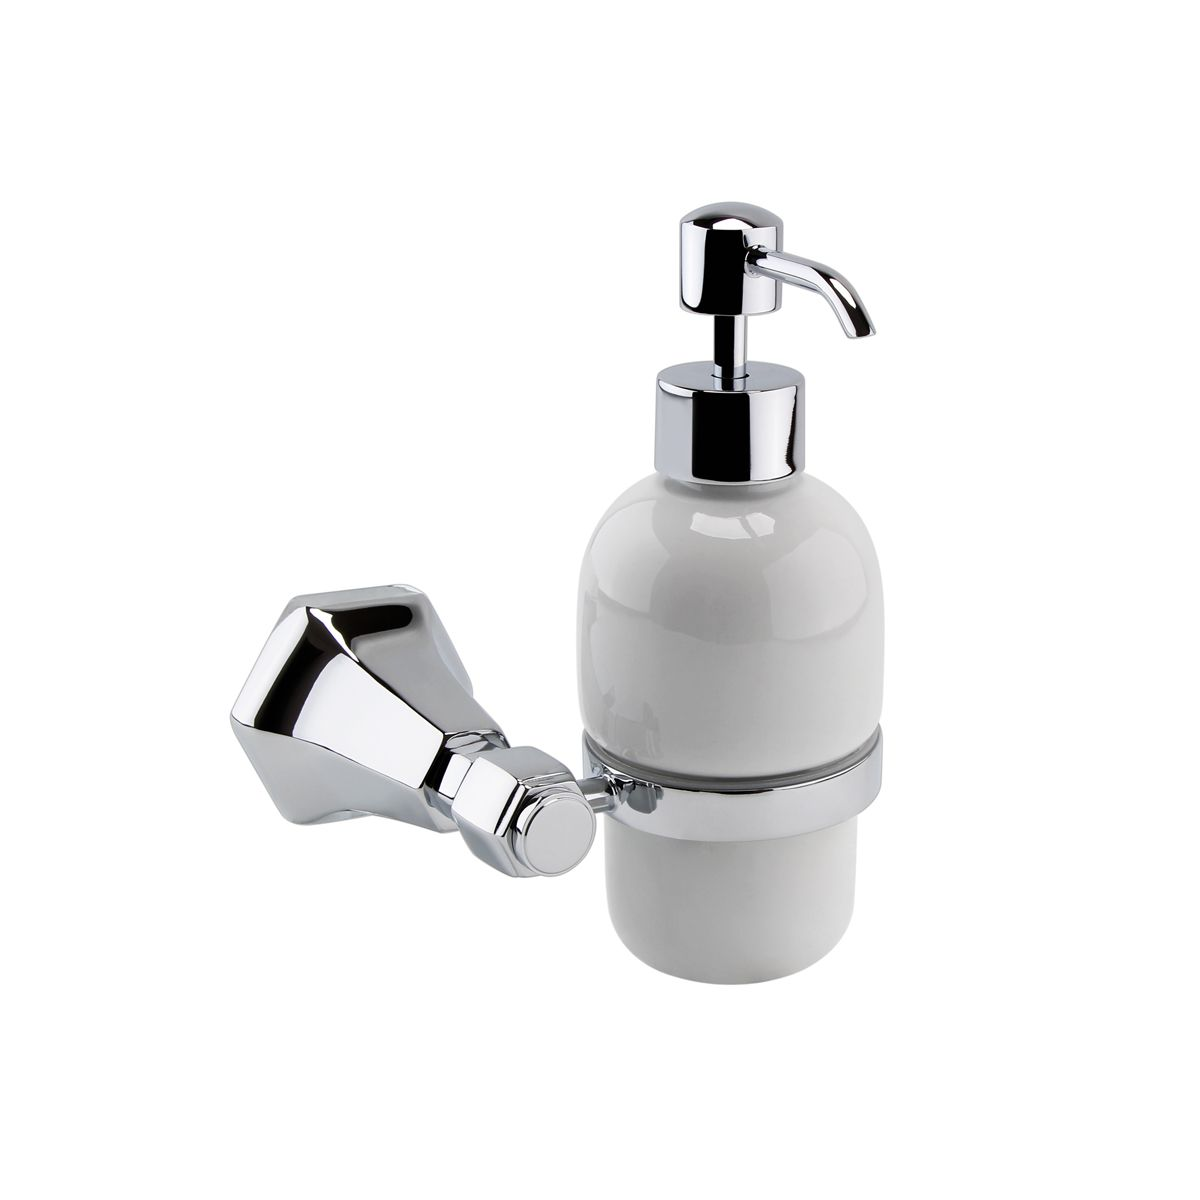 RAK Washington Ceramic Soap Dispenser